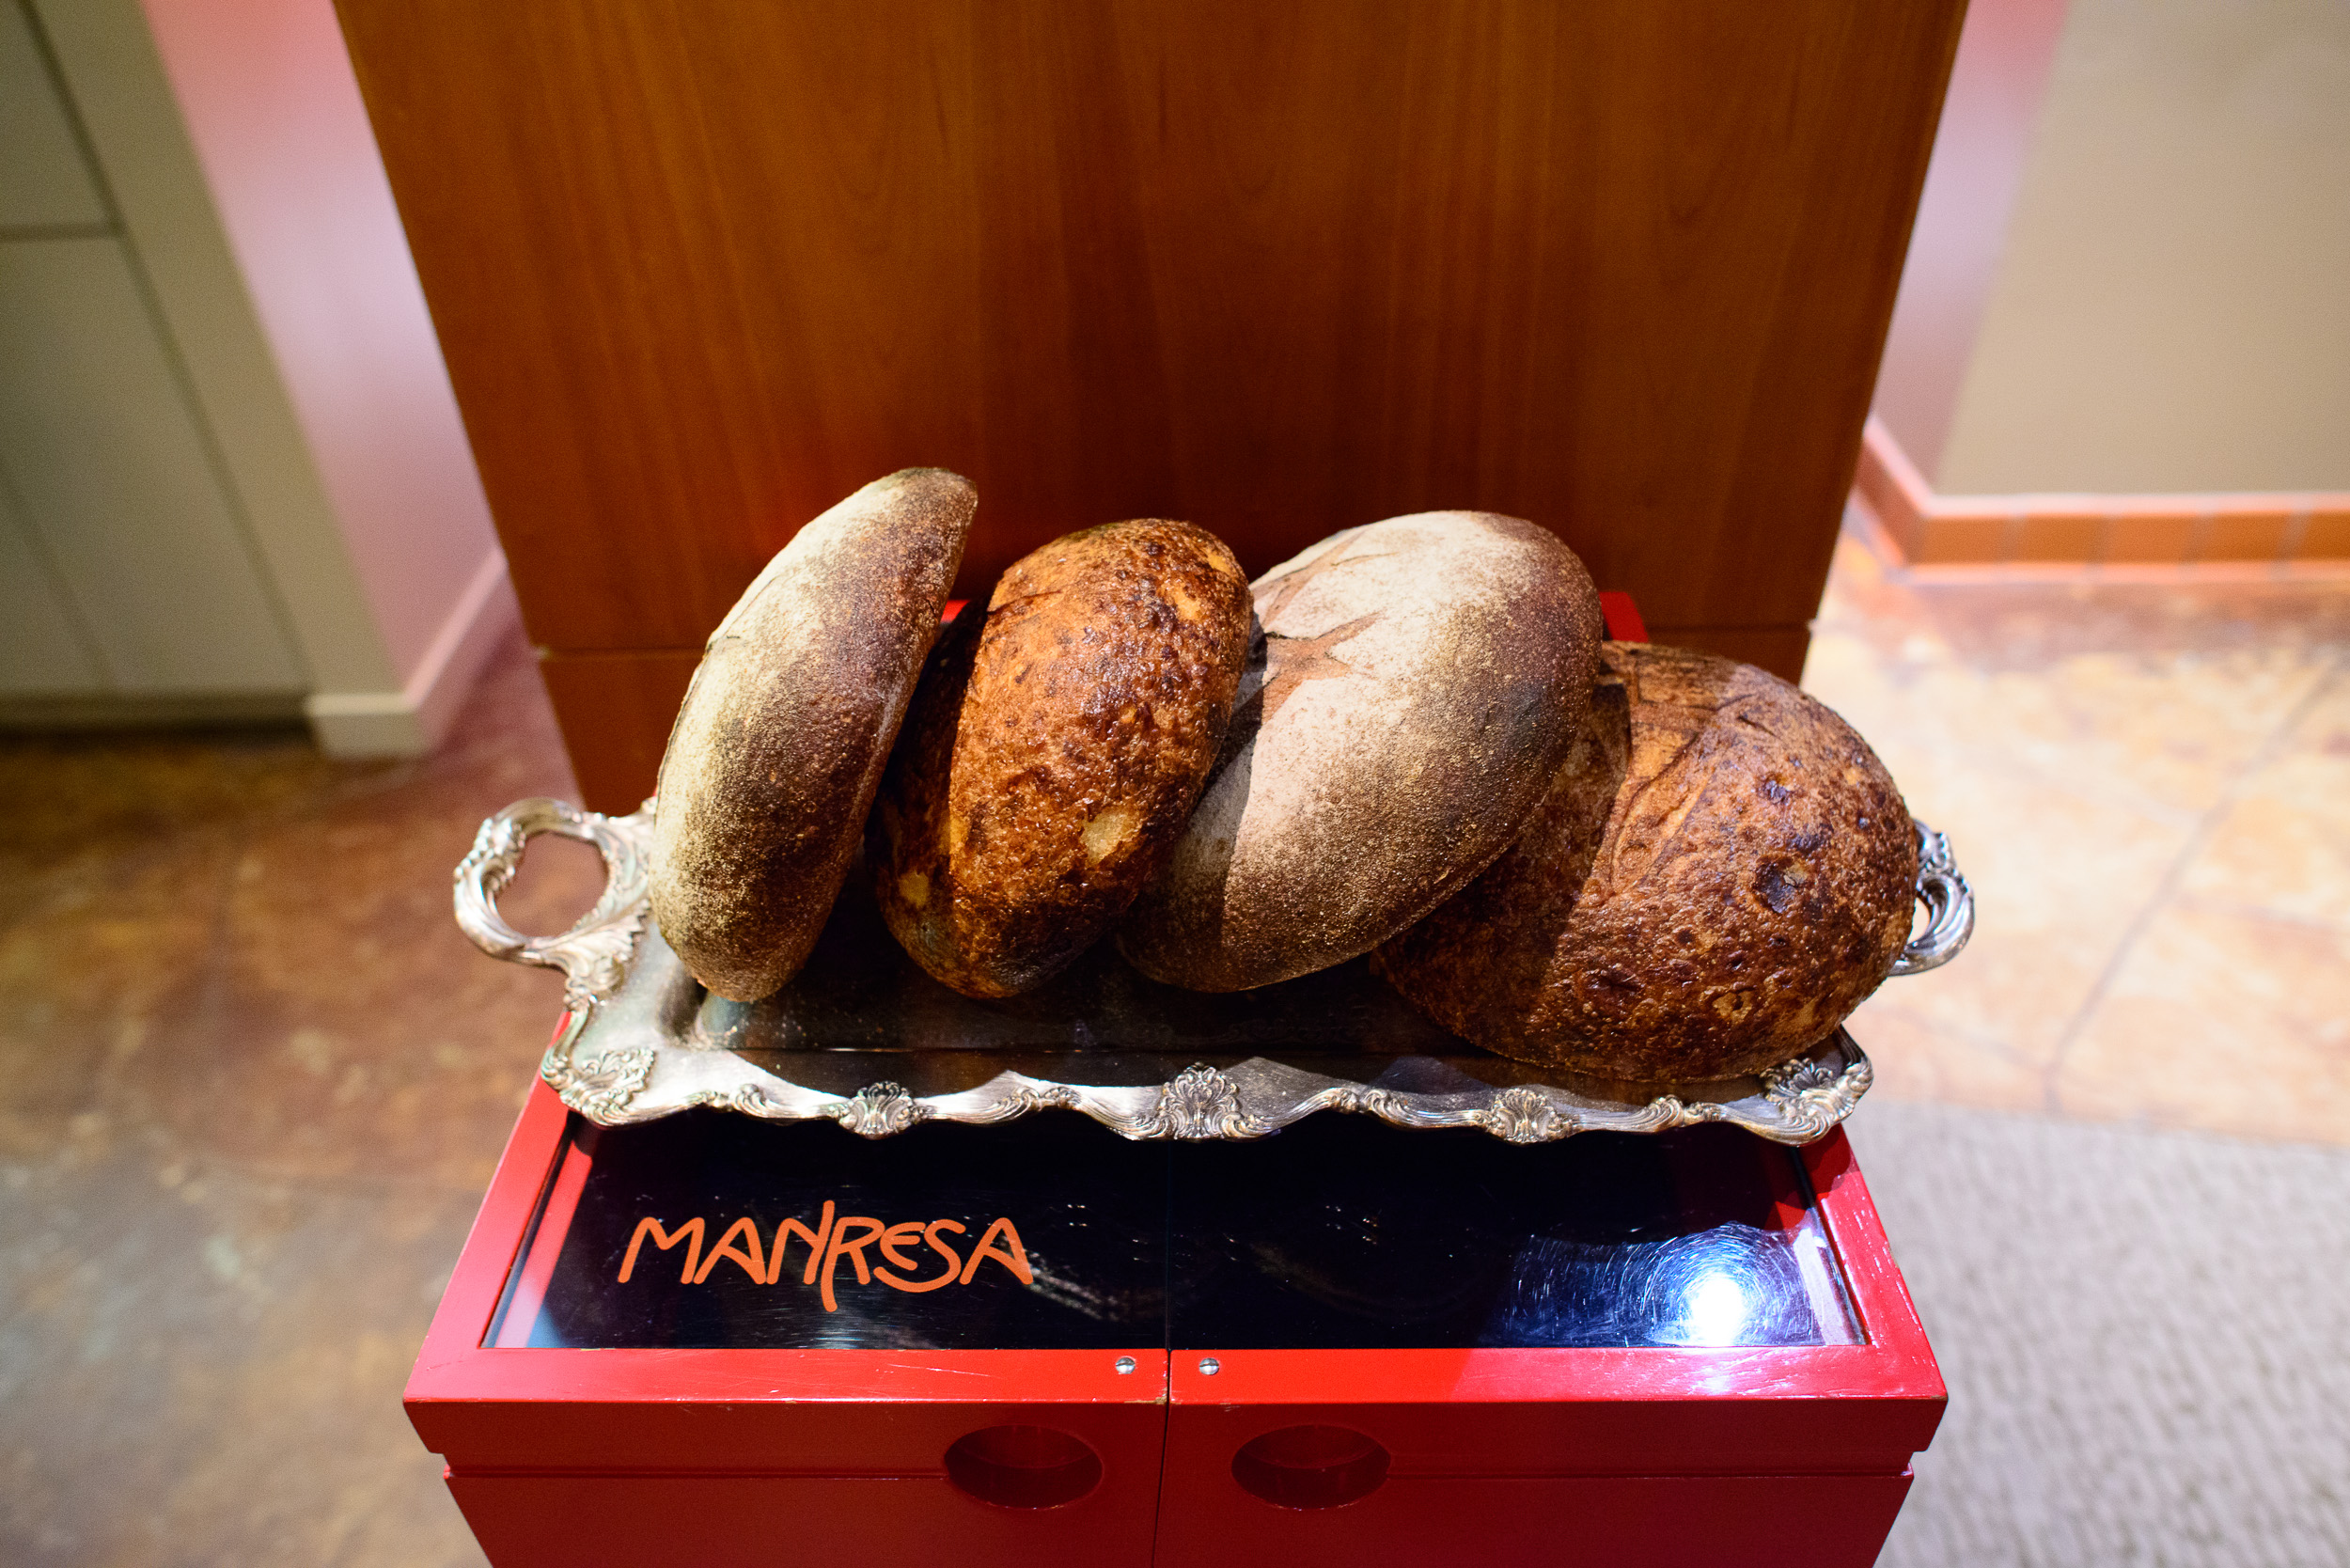 Manresa bread (currently being sold at Campbell farmers market)